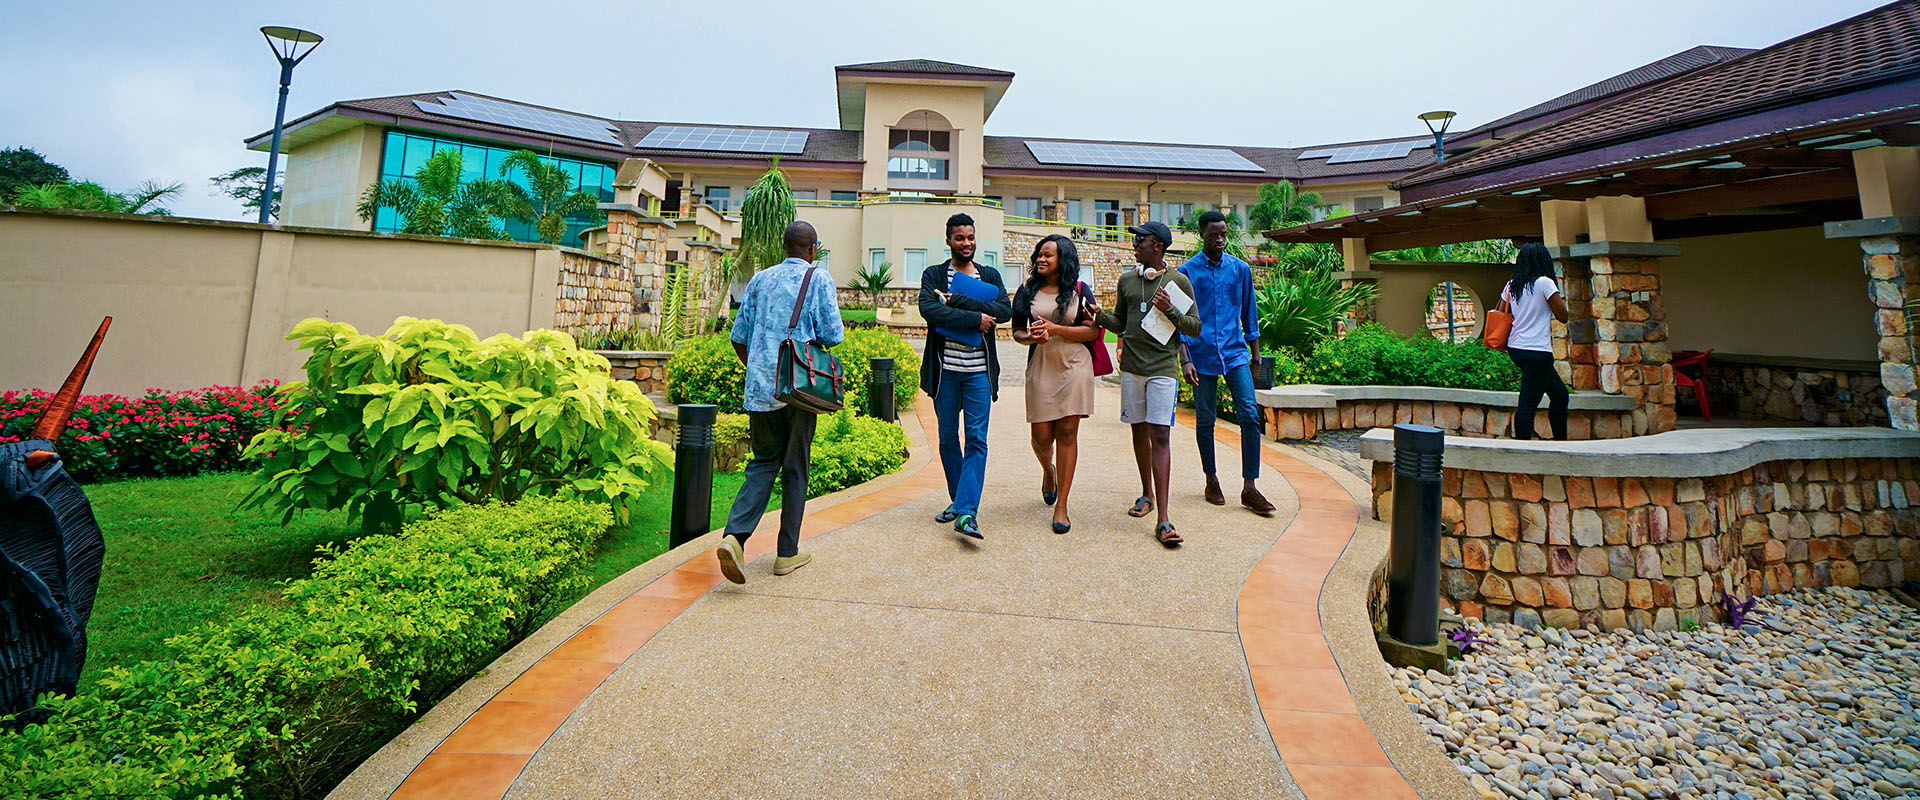 <p>See photos of life and people on campus with the hashtag, #atAshesi</p>